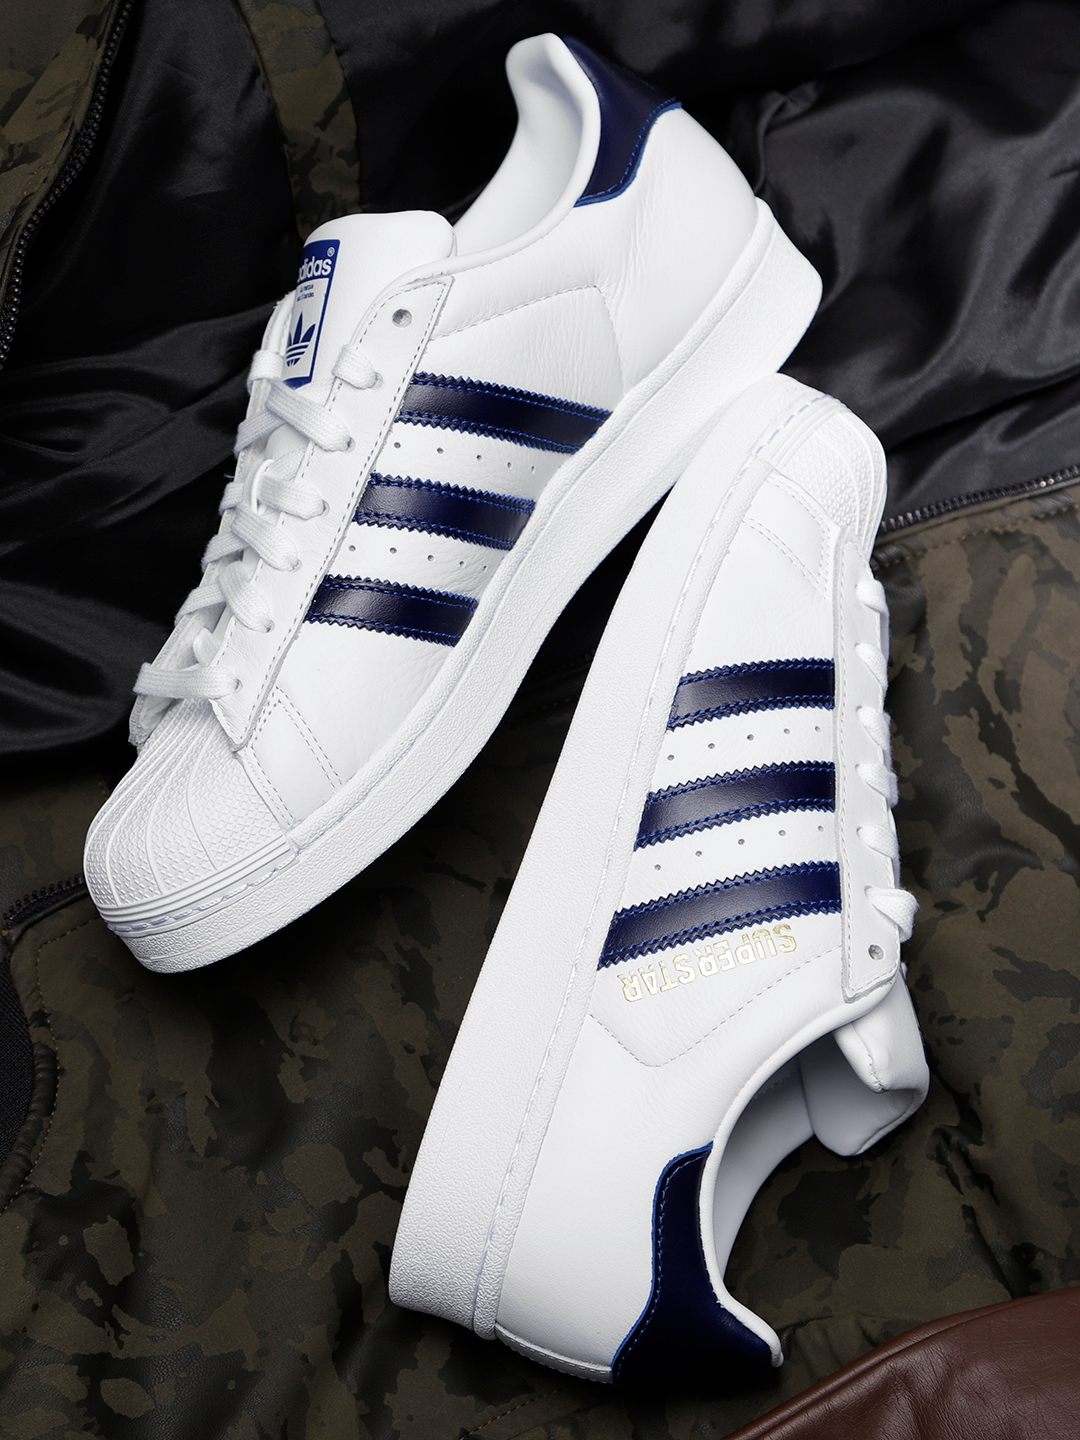 adc5ea0290a83 Buy ADIDAS Originals Men White Leather Superstar Sneakers - Casual ...